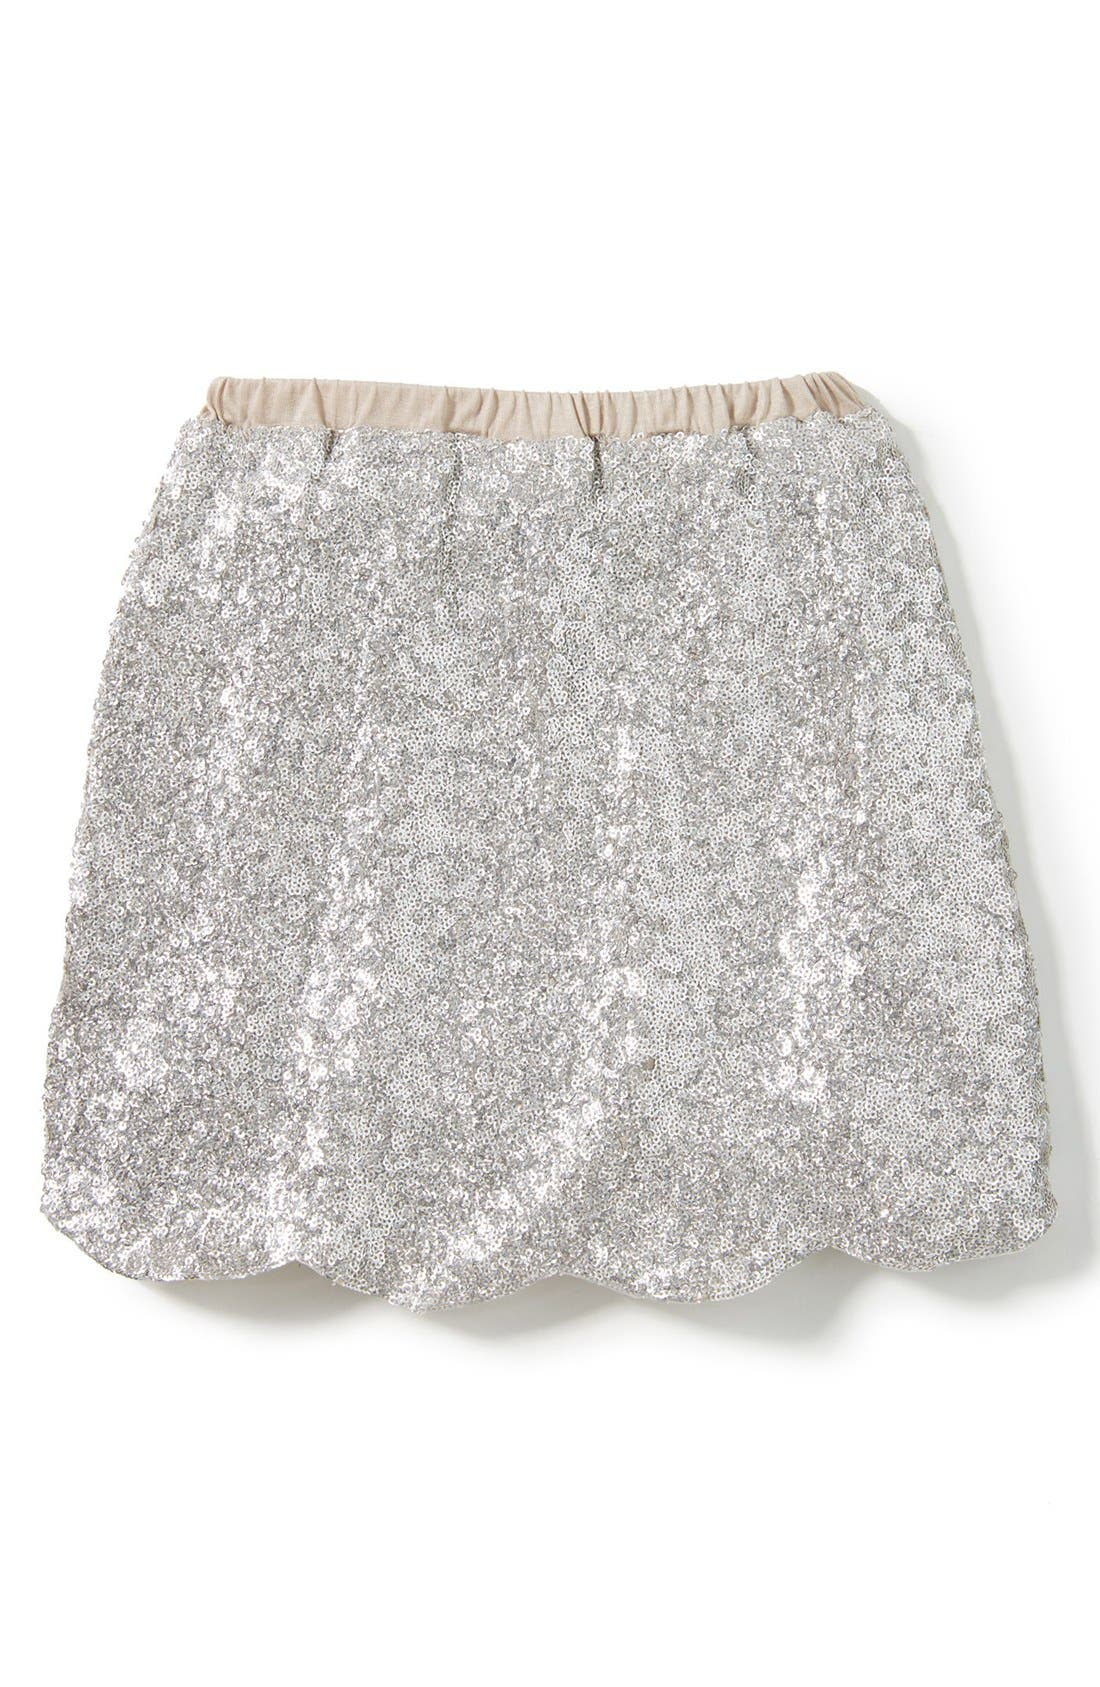 Peek Drew Sequin Skirt, Main, color, 040